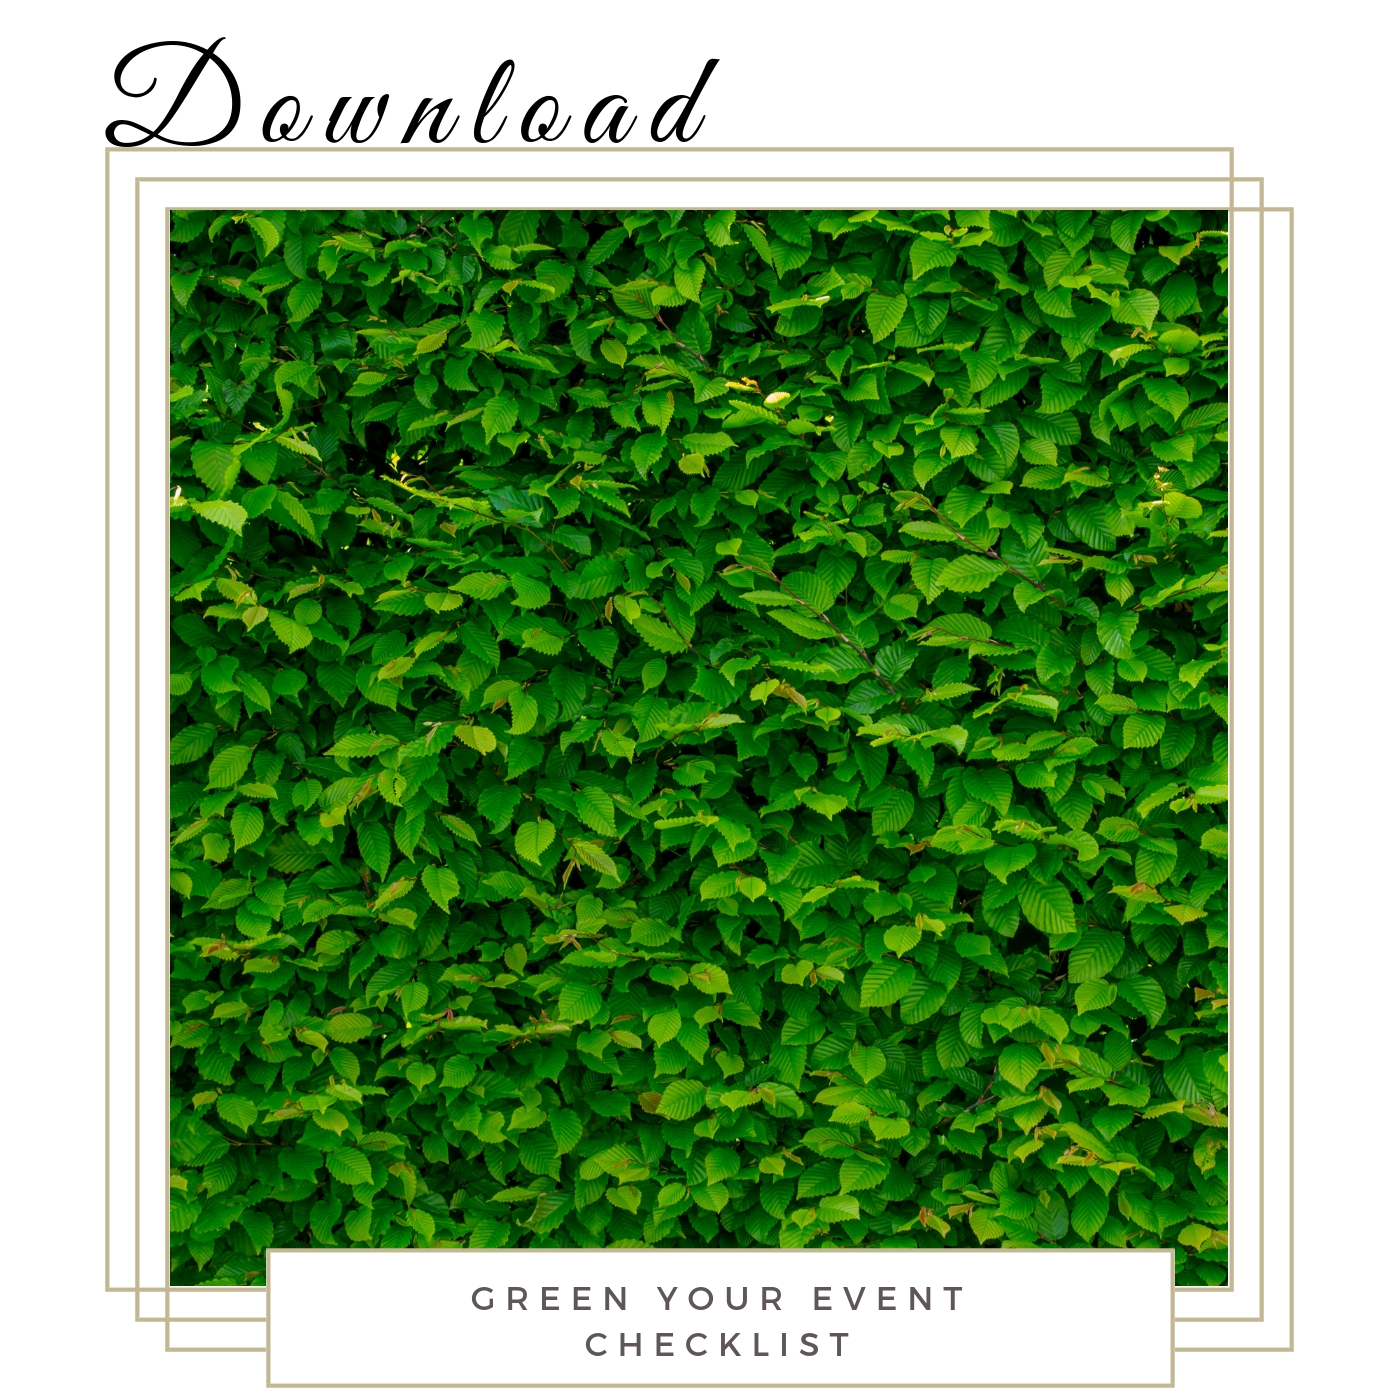 Green Your Event Checklist